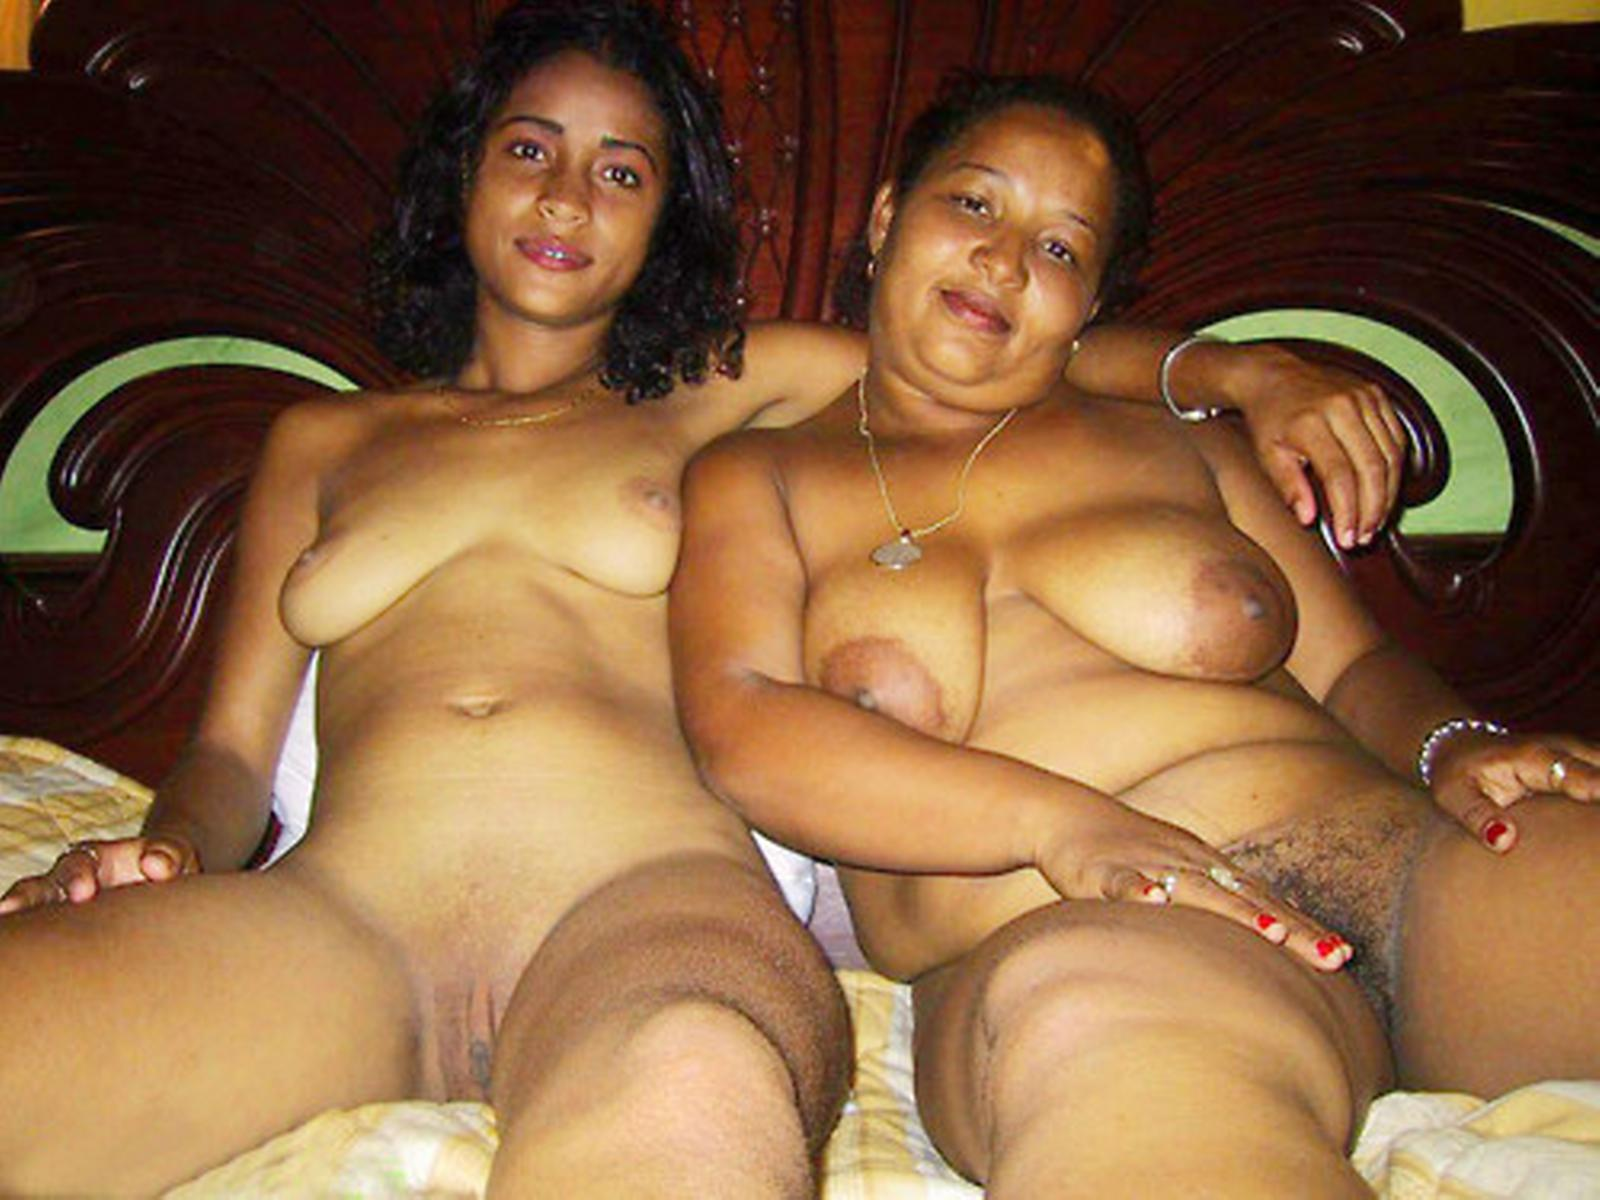 Latina Mom Daughter Lesbian